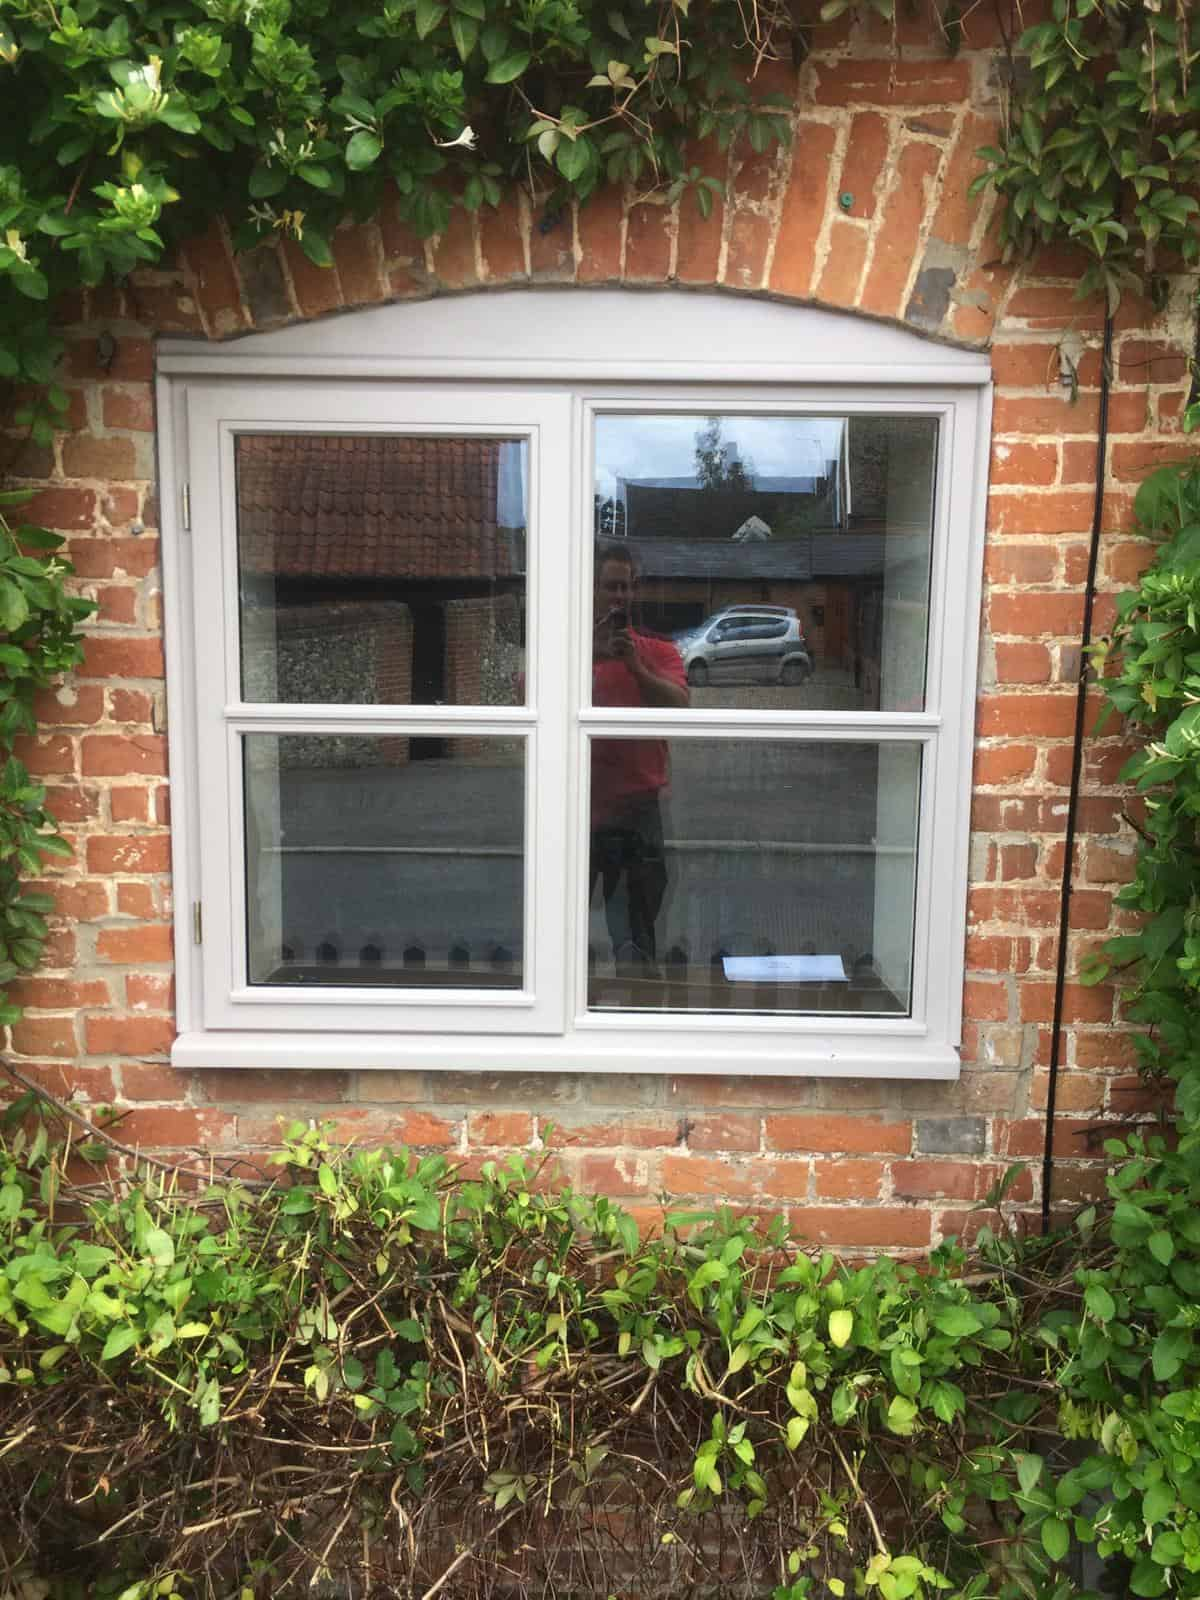 Double Glazing Vs Triple Glazing: Which Should You Choose?